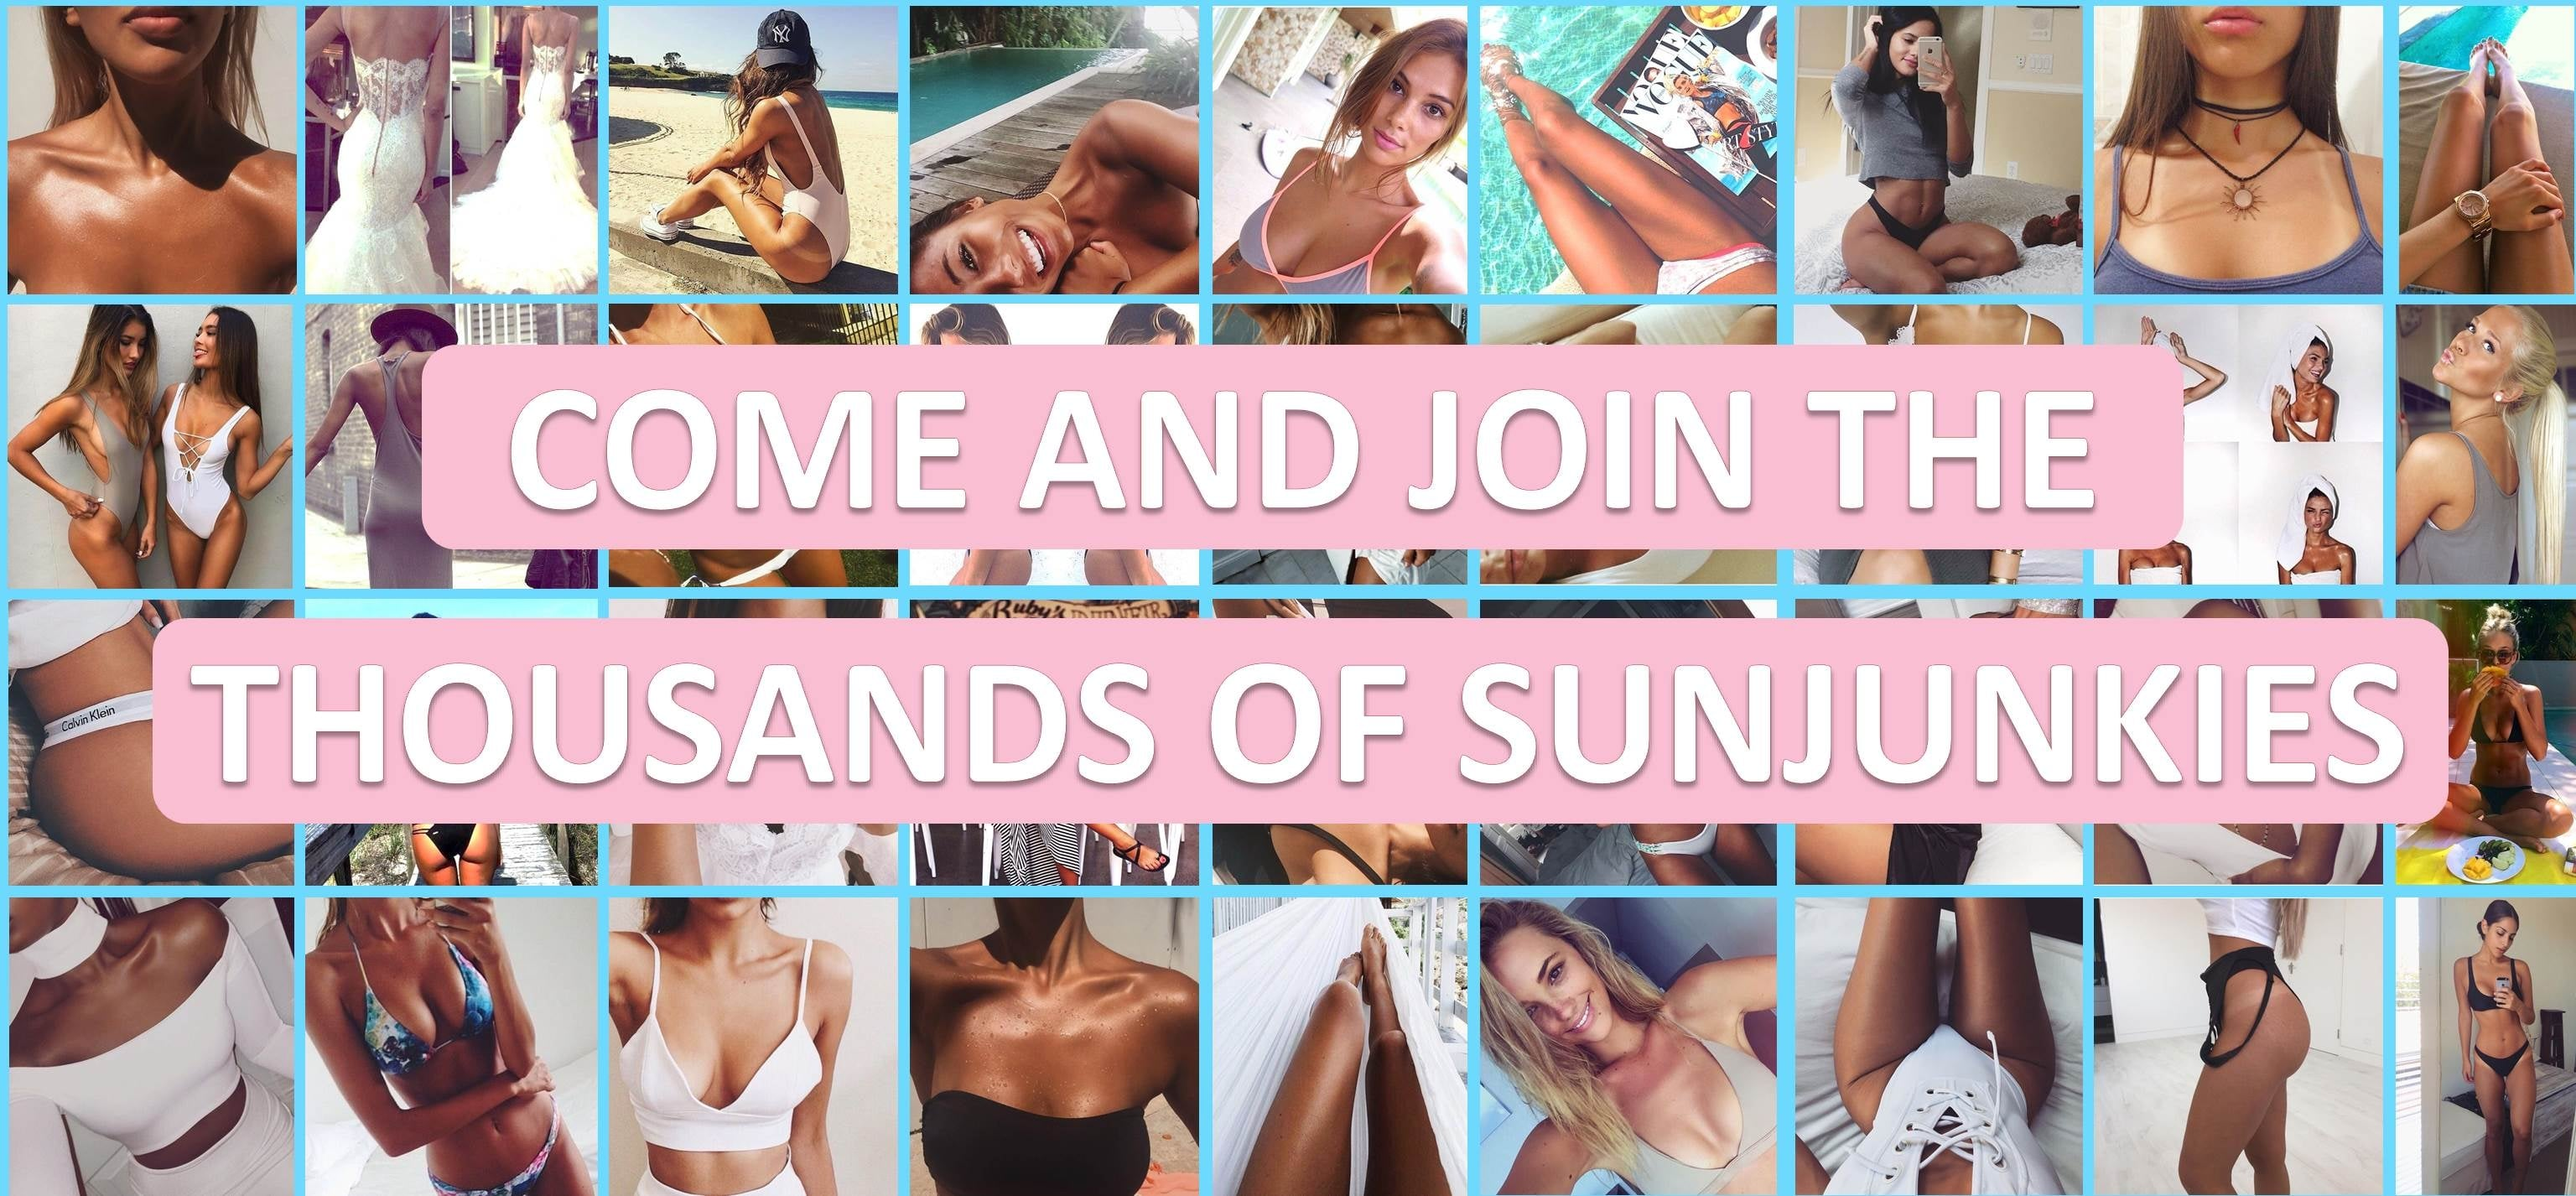 Sunjunkie best fake tan and self tan reviews 2016